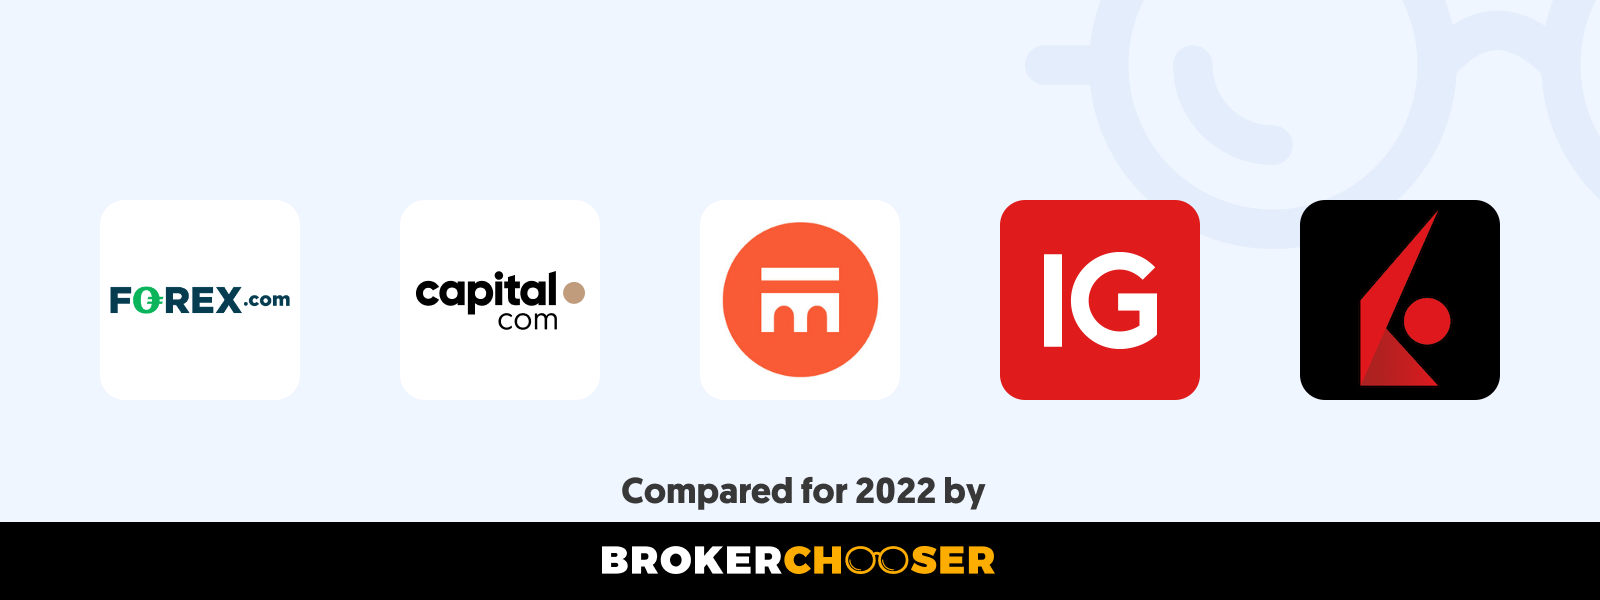 Best forex brokers for beginners in the Turks & Caicos Islands in 2021